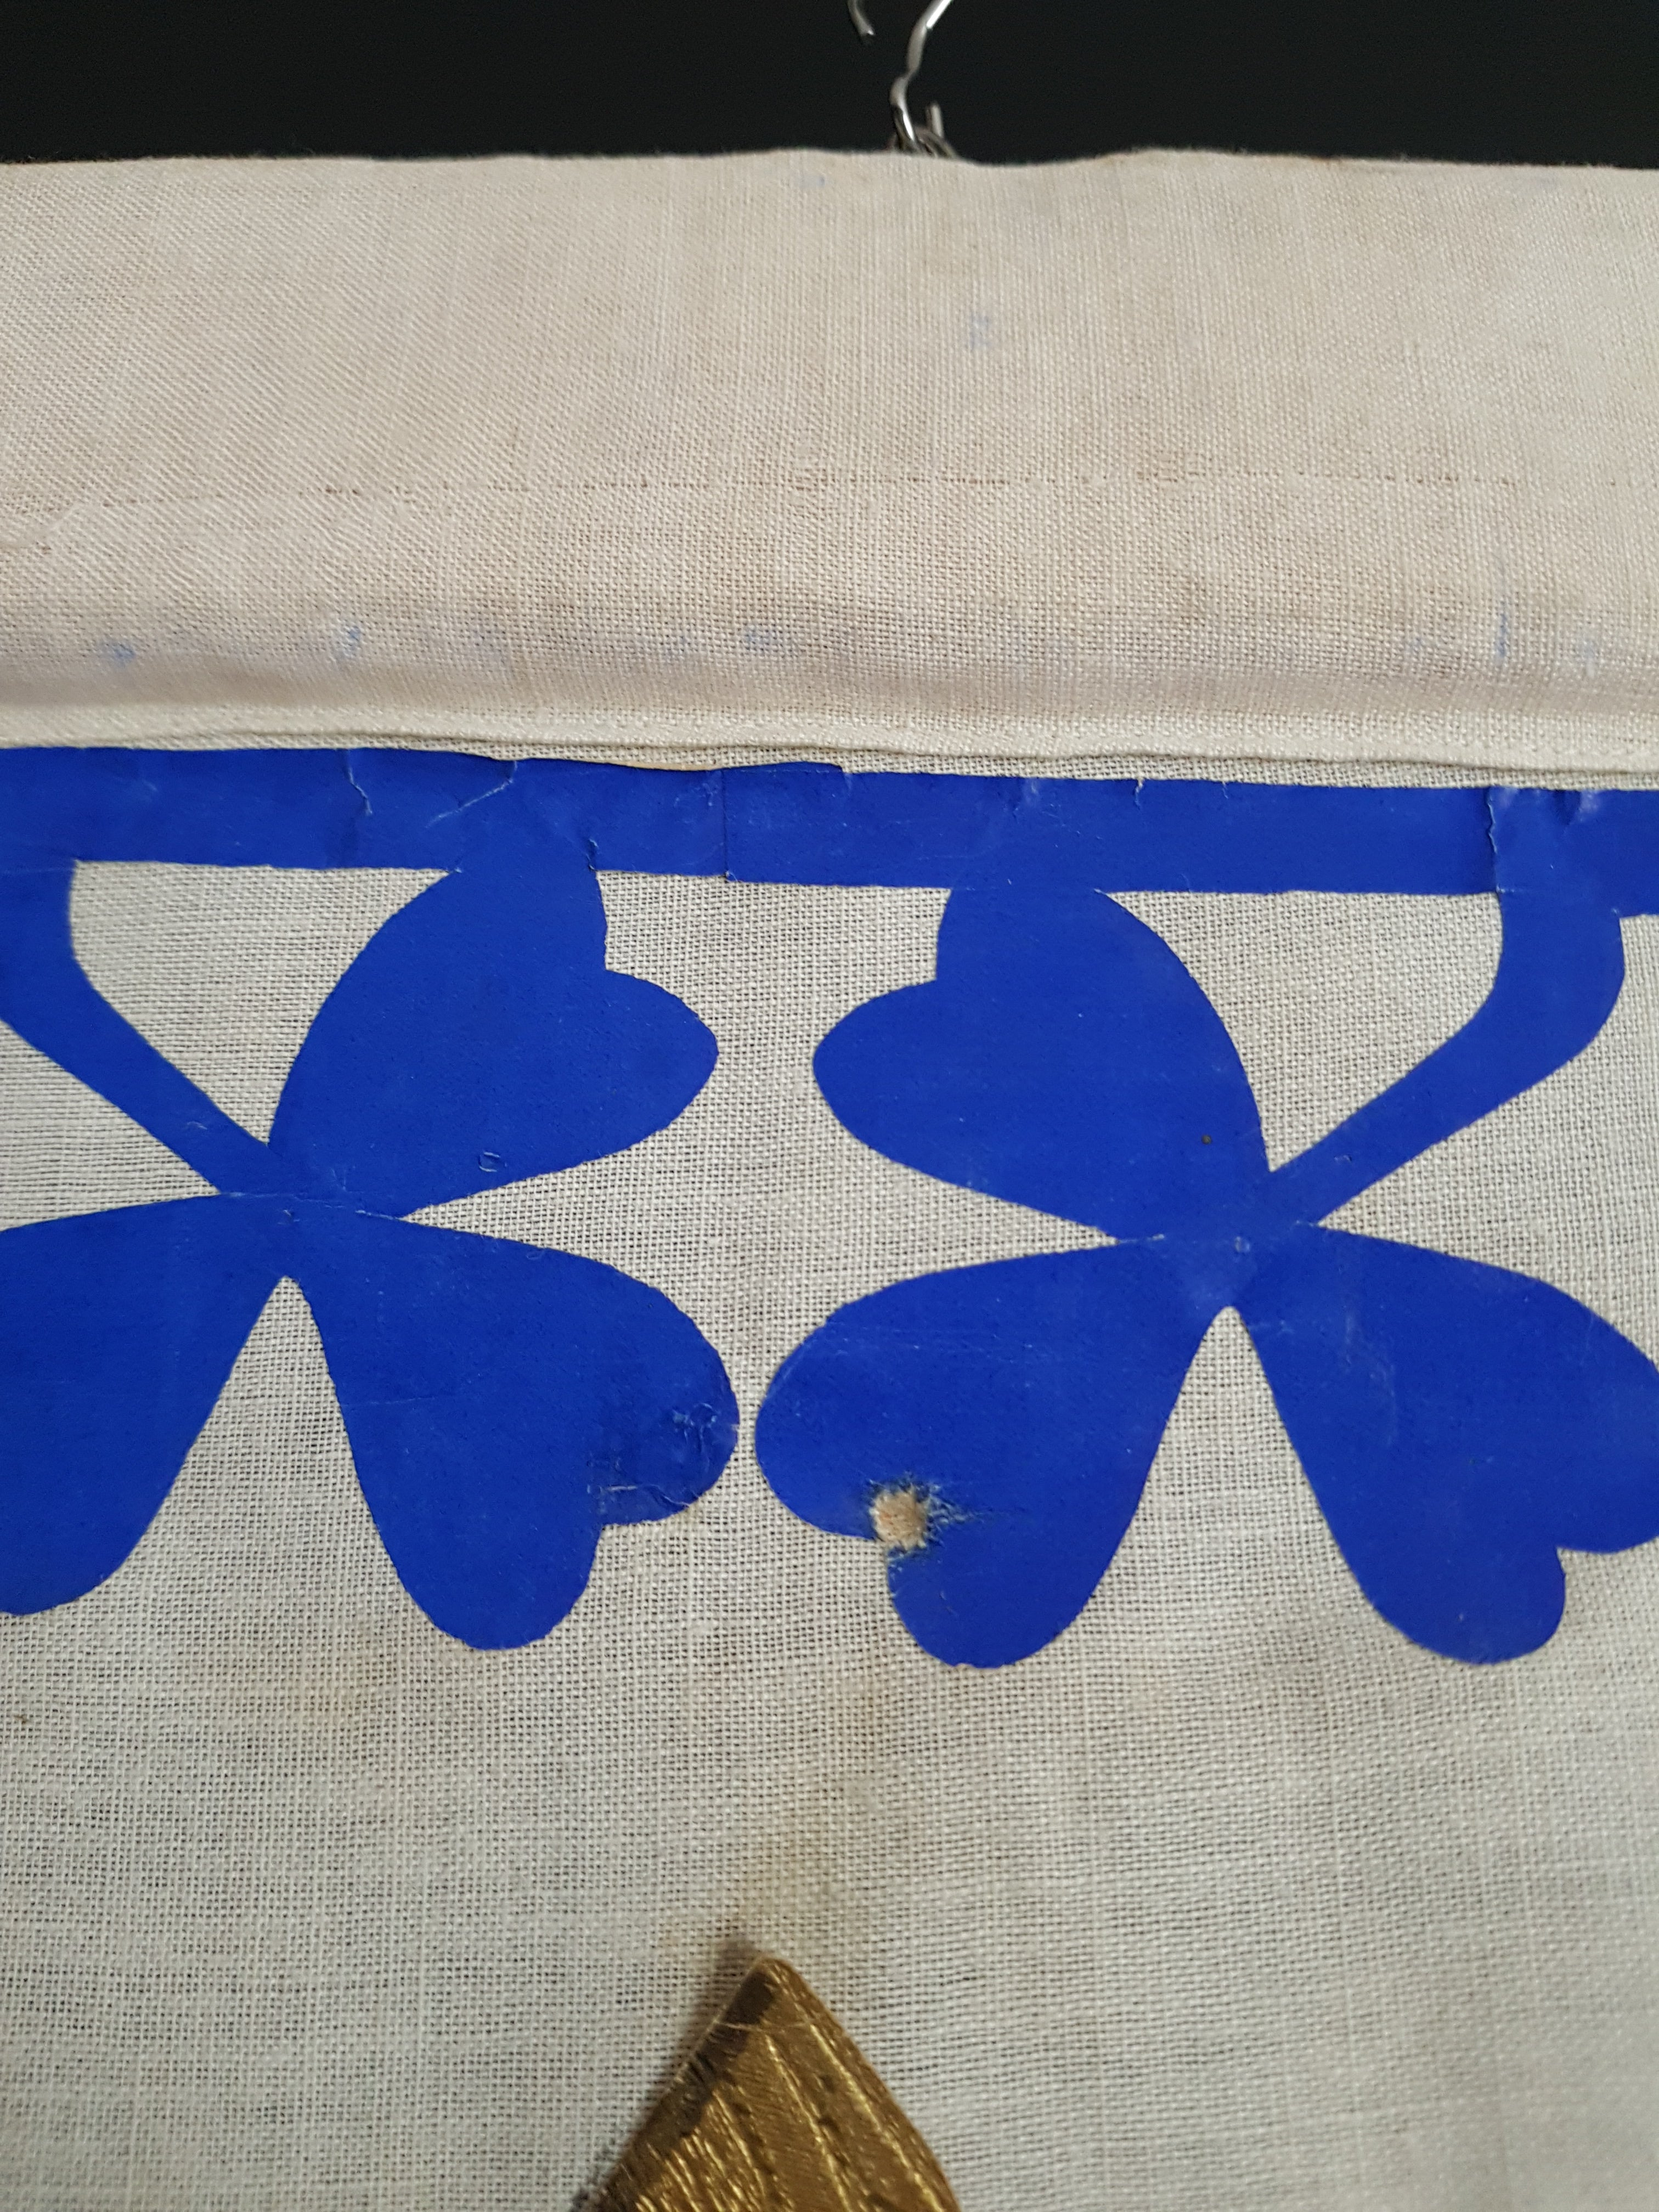 Detail Ave Maria Notre Dame Mary blue white and gold fleur de lis border pennant Vintage Antique red procession banner - catholic church ceremonial display